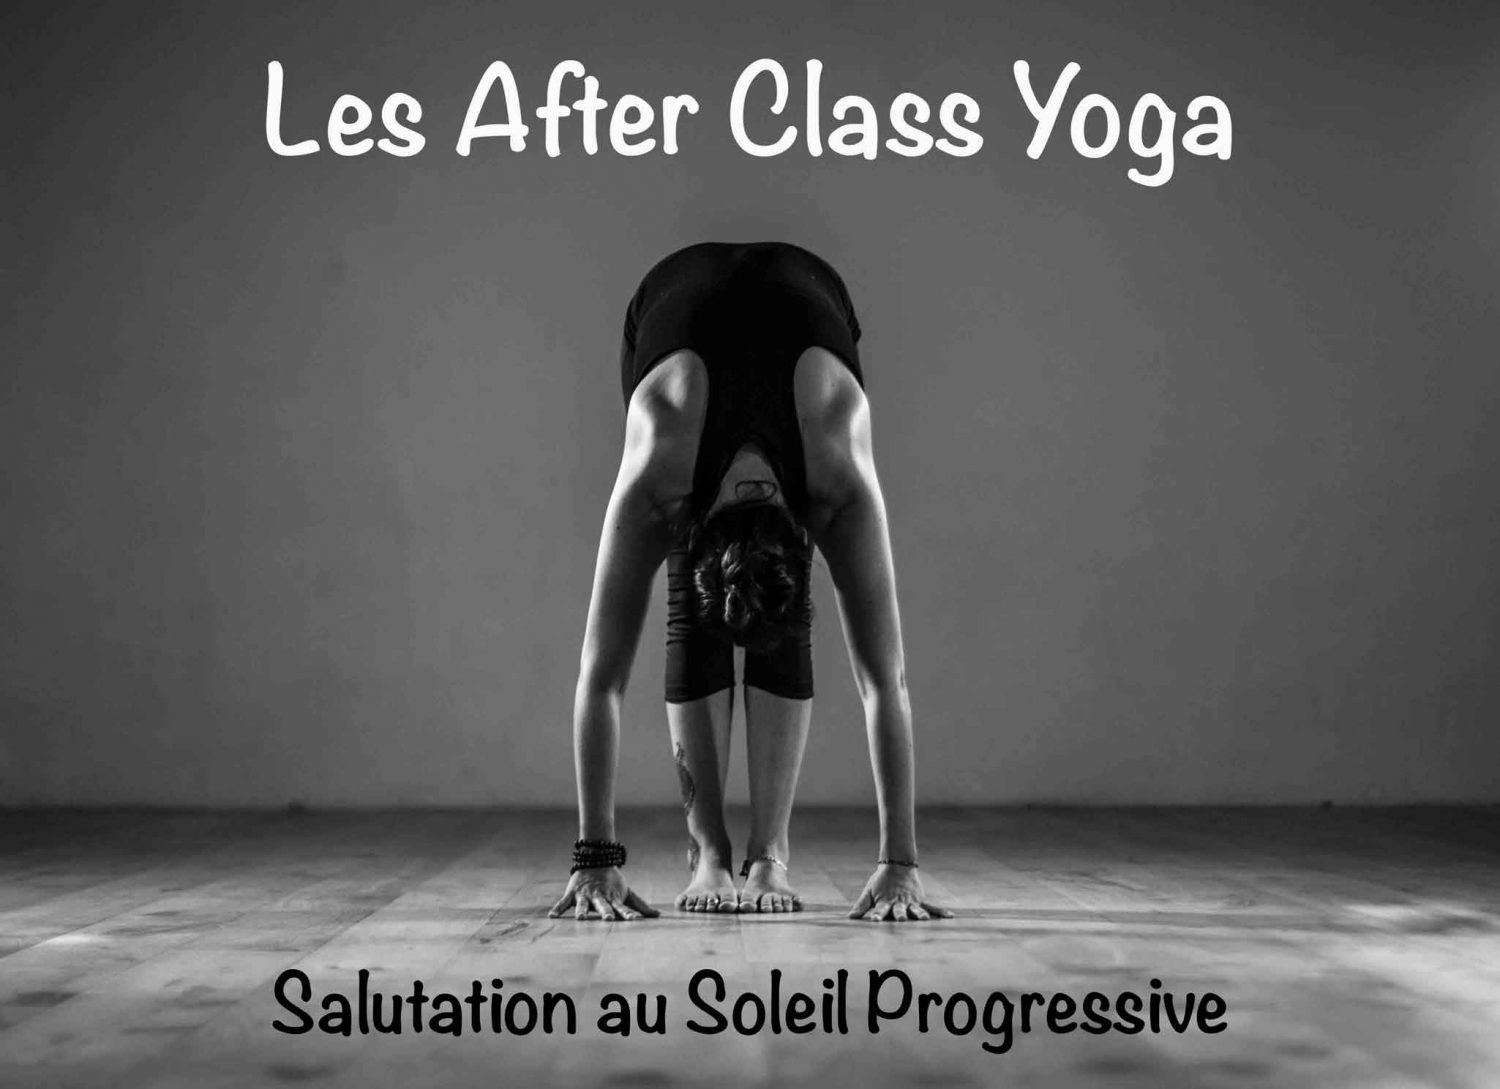 La Salutation au Soleil progressive, After Class Yoga